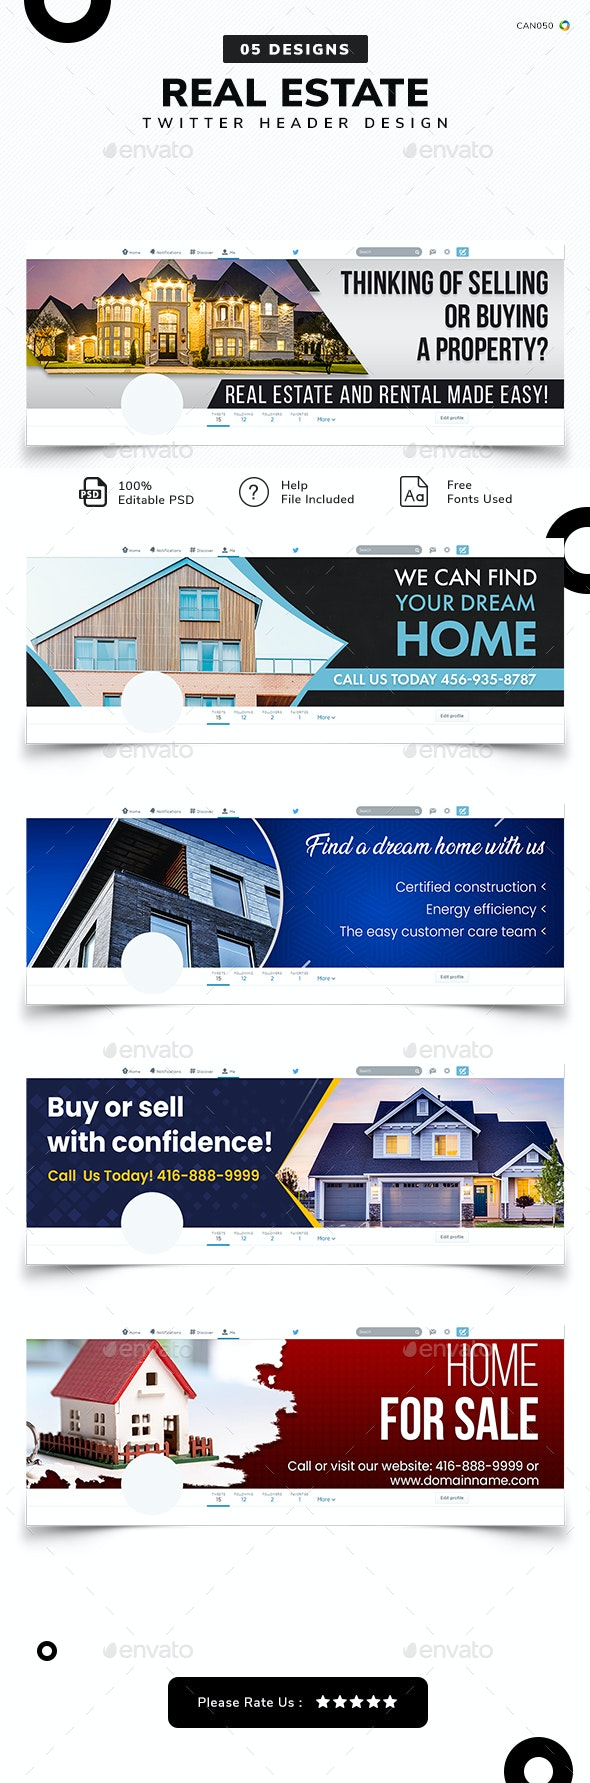 Real Estate Twitter Cover Templates - 05 Designs - Twitter Social Media